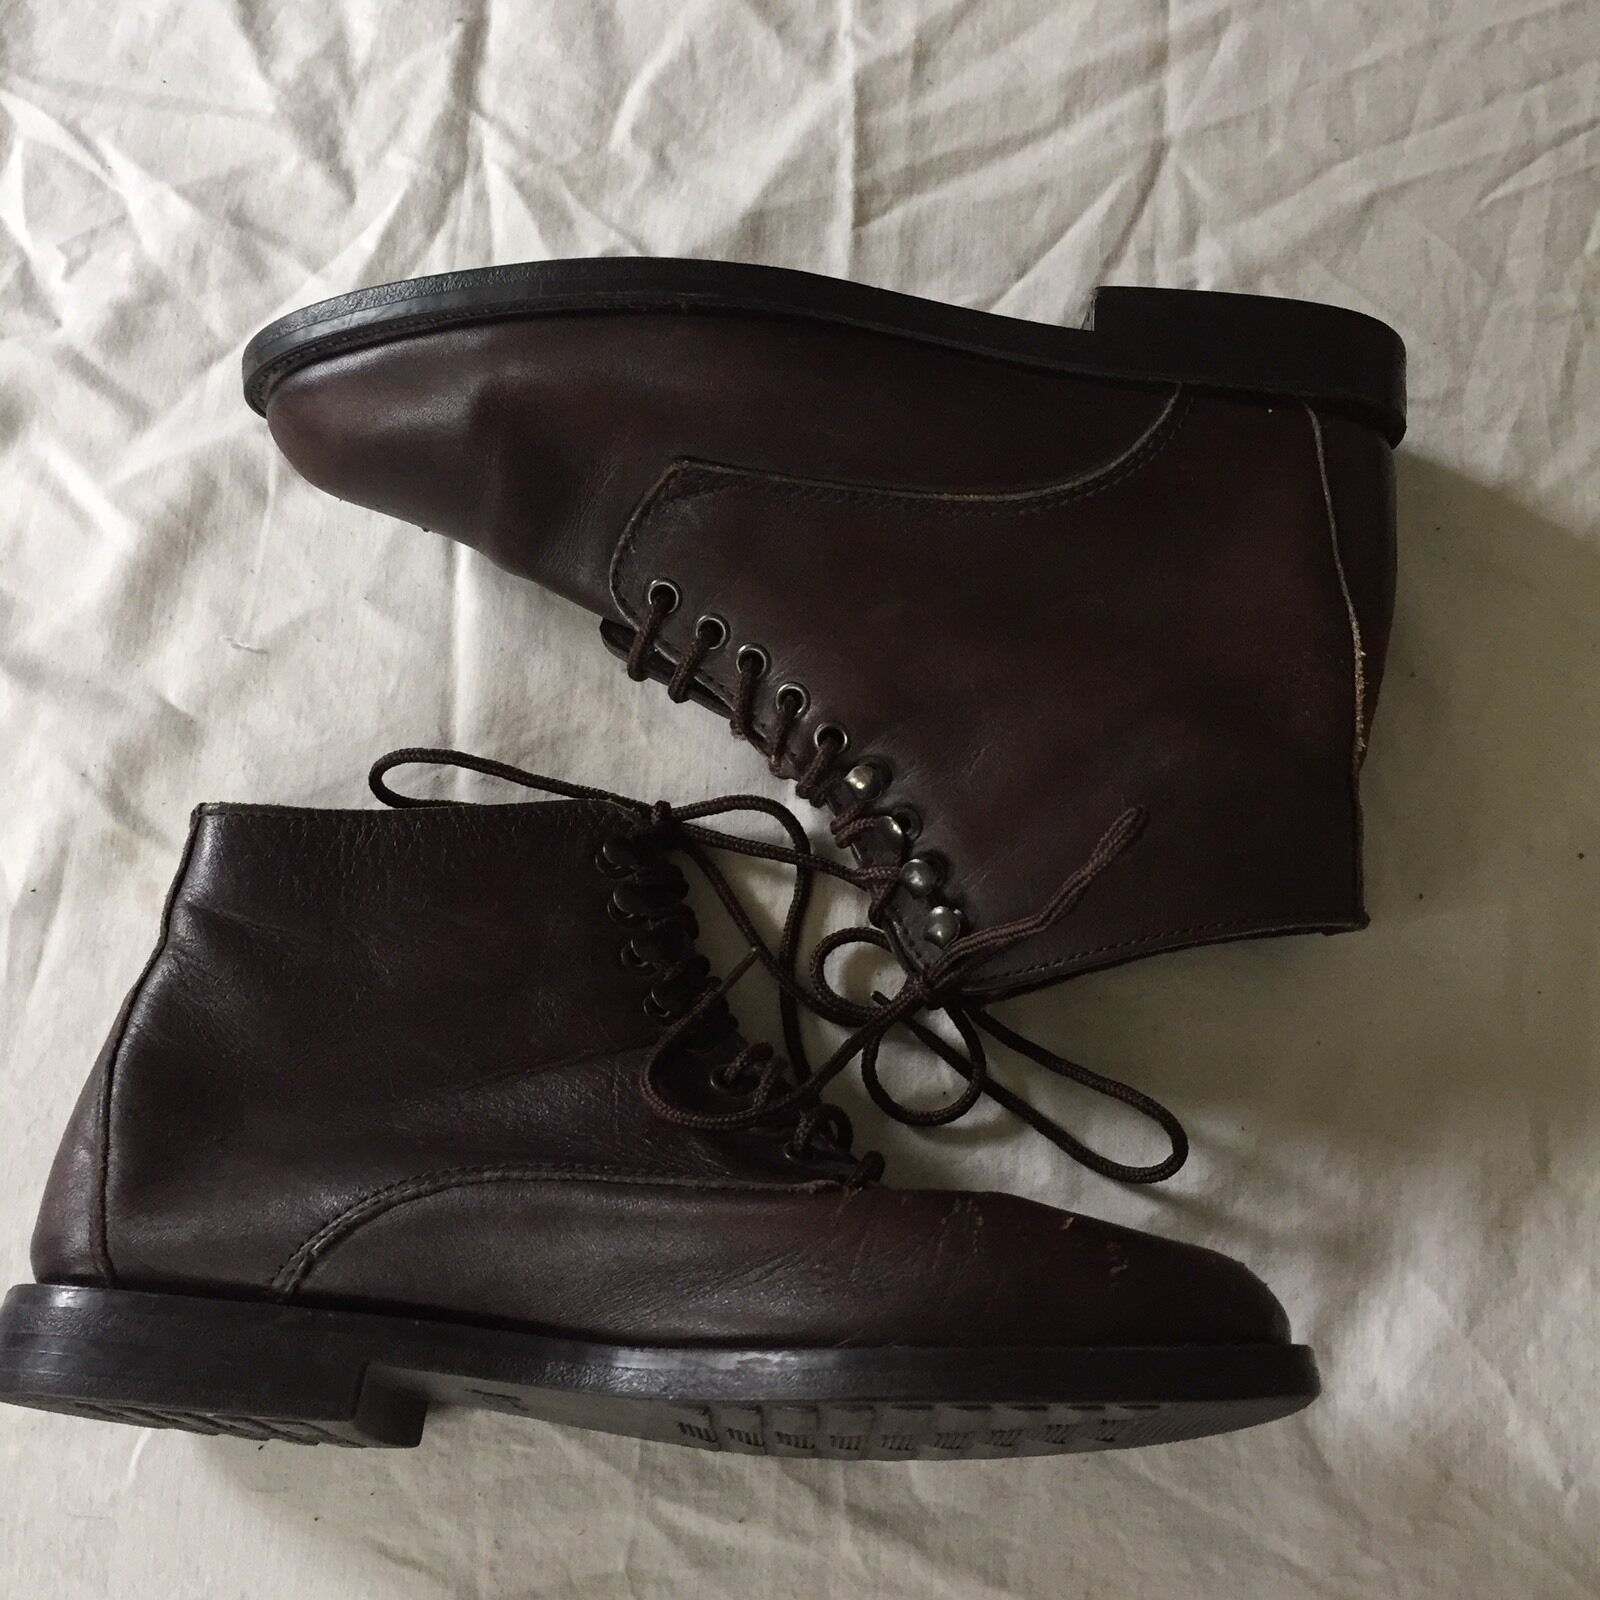 bass s size 6m brown leather ankle boots cad 1 24